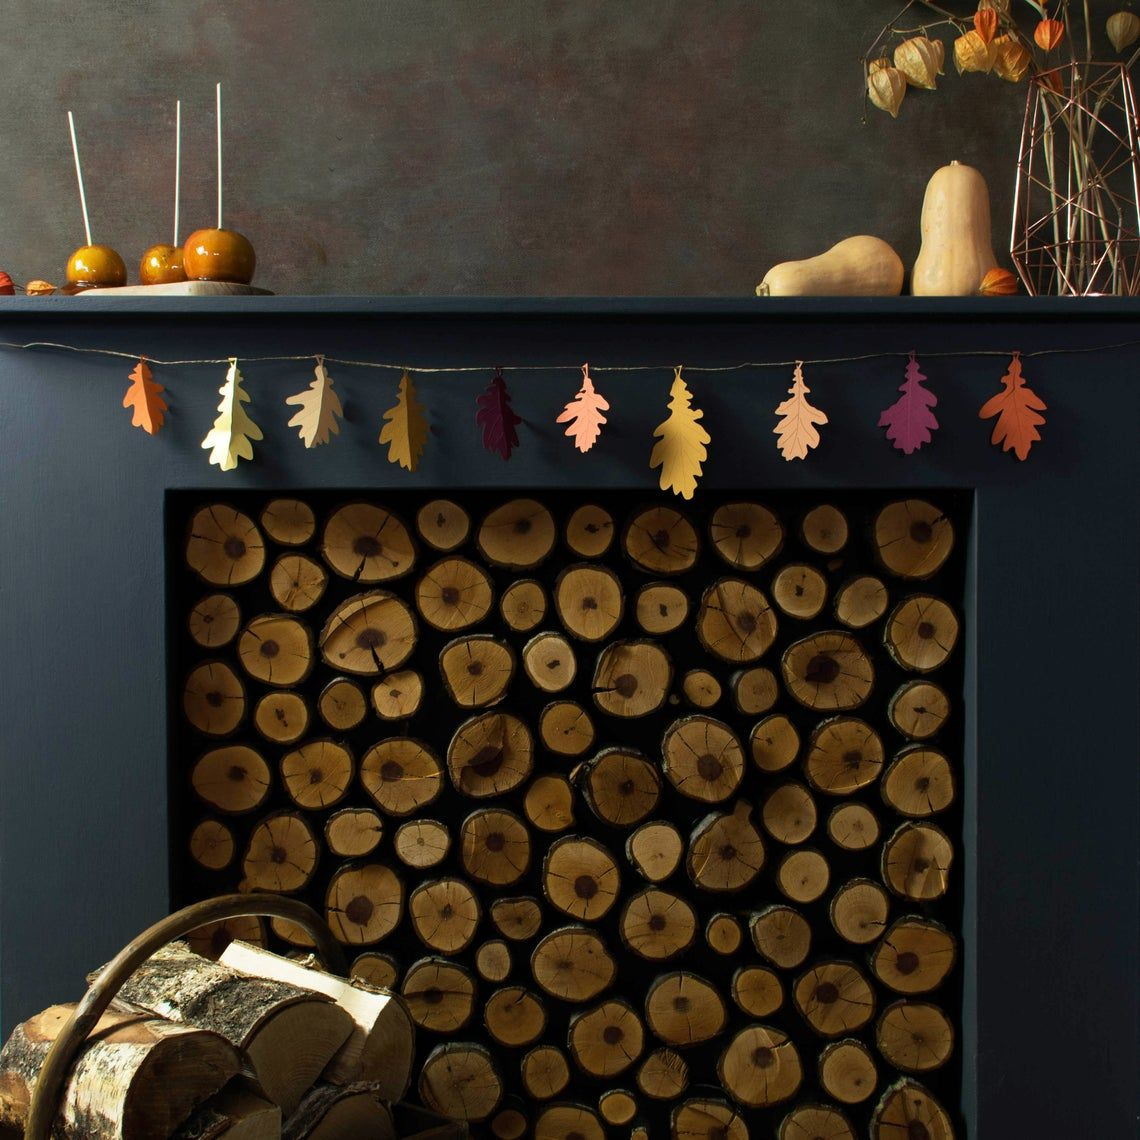 How are you decorating your mantel for the season? This fall motif lasercut paper garland makes an easy and festive addition.